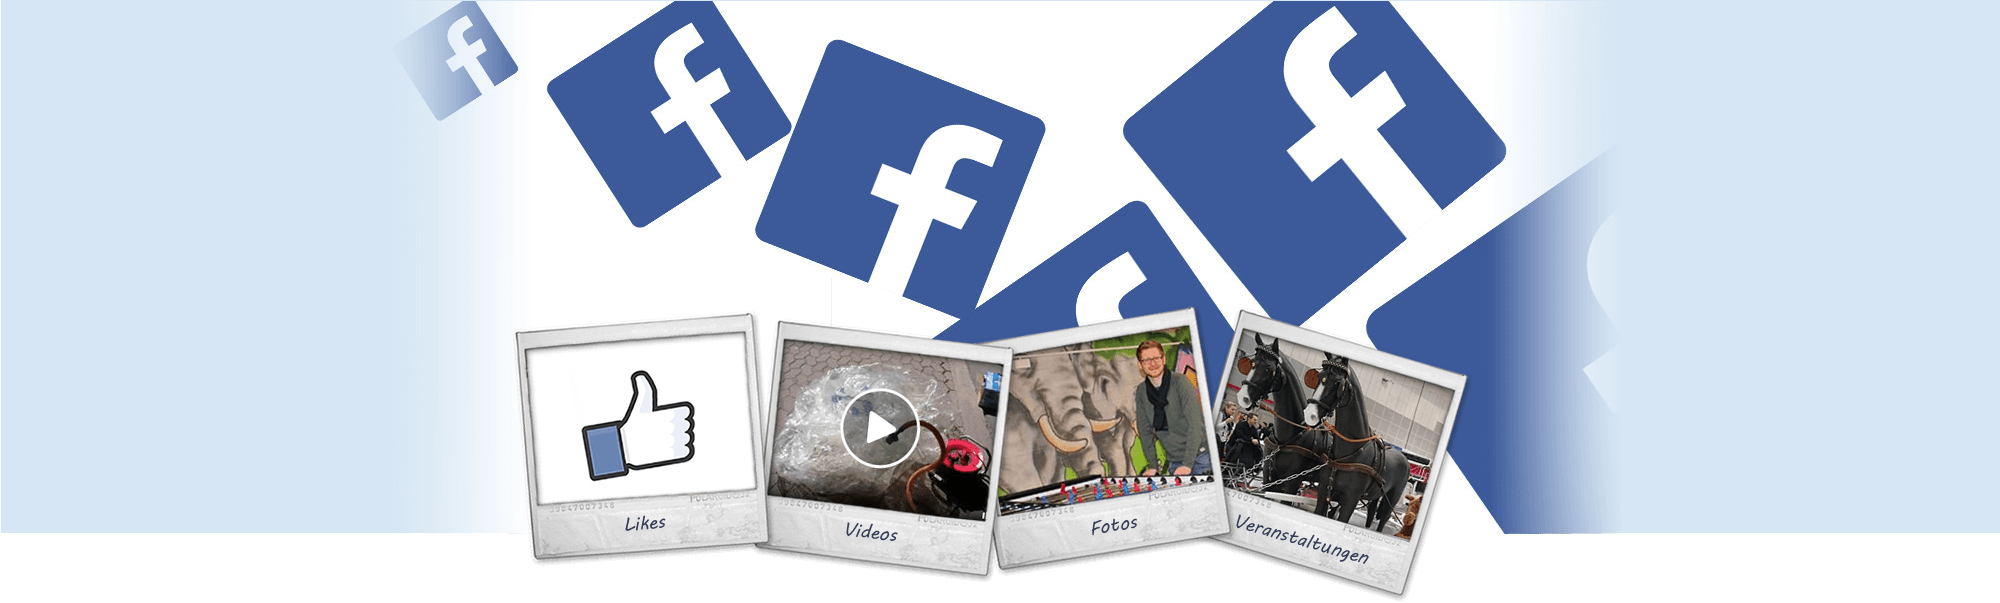 Slide-Facebook-Event-Verleih